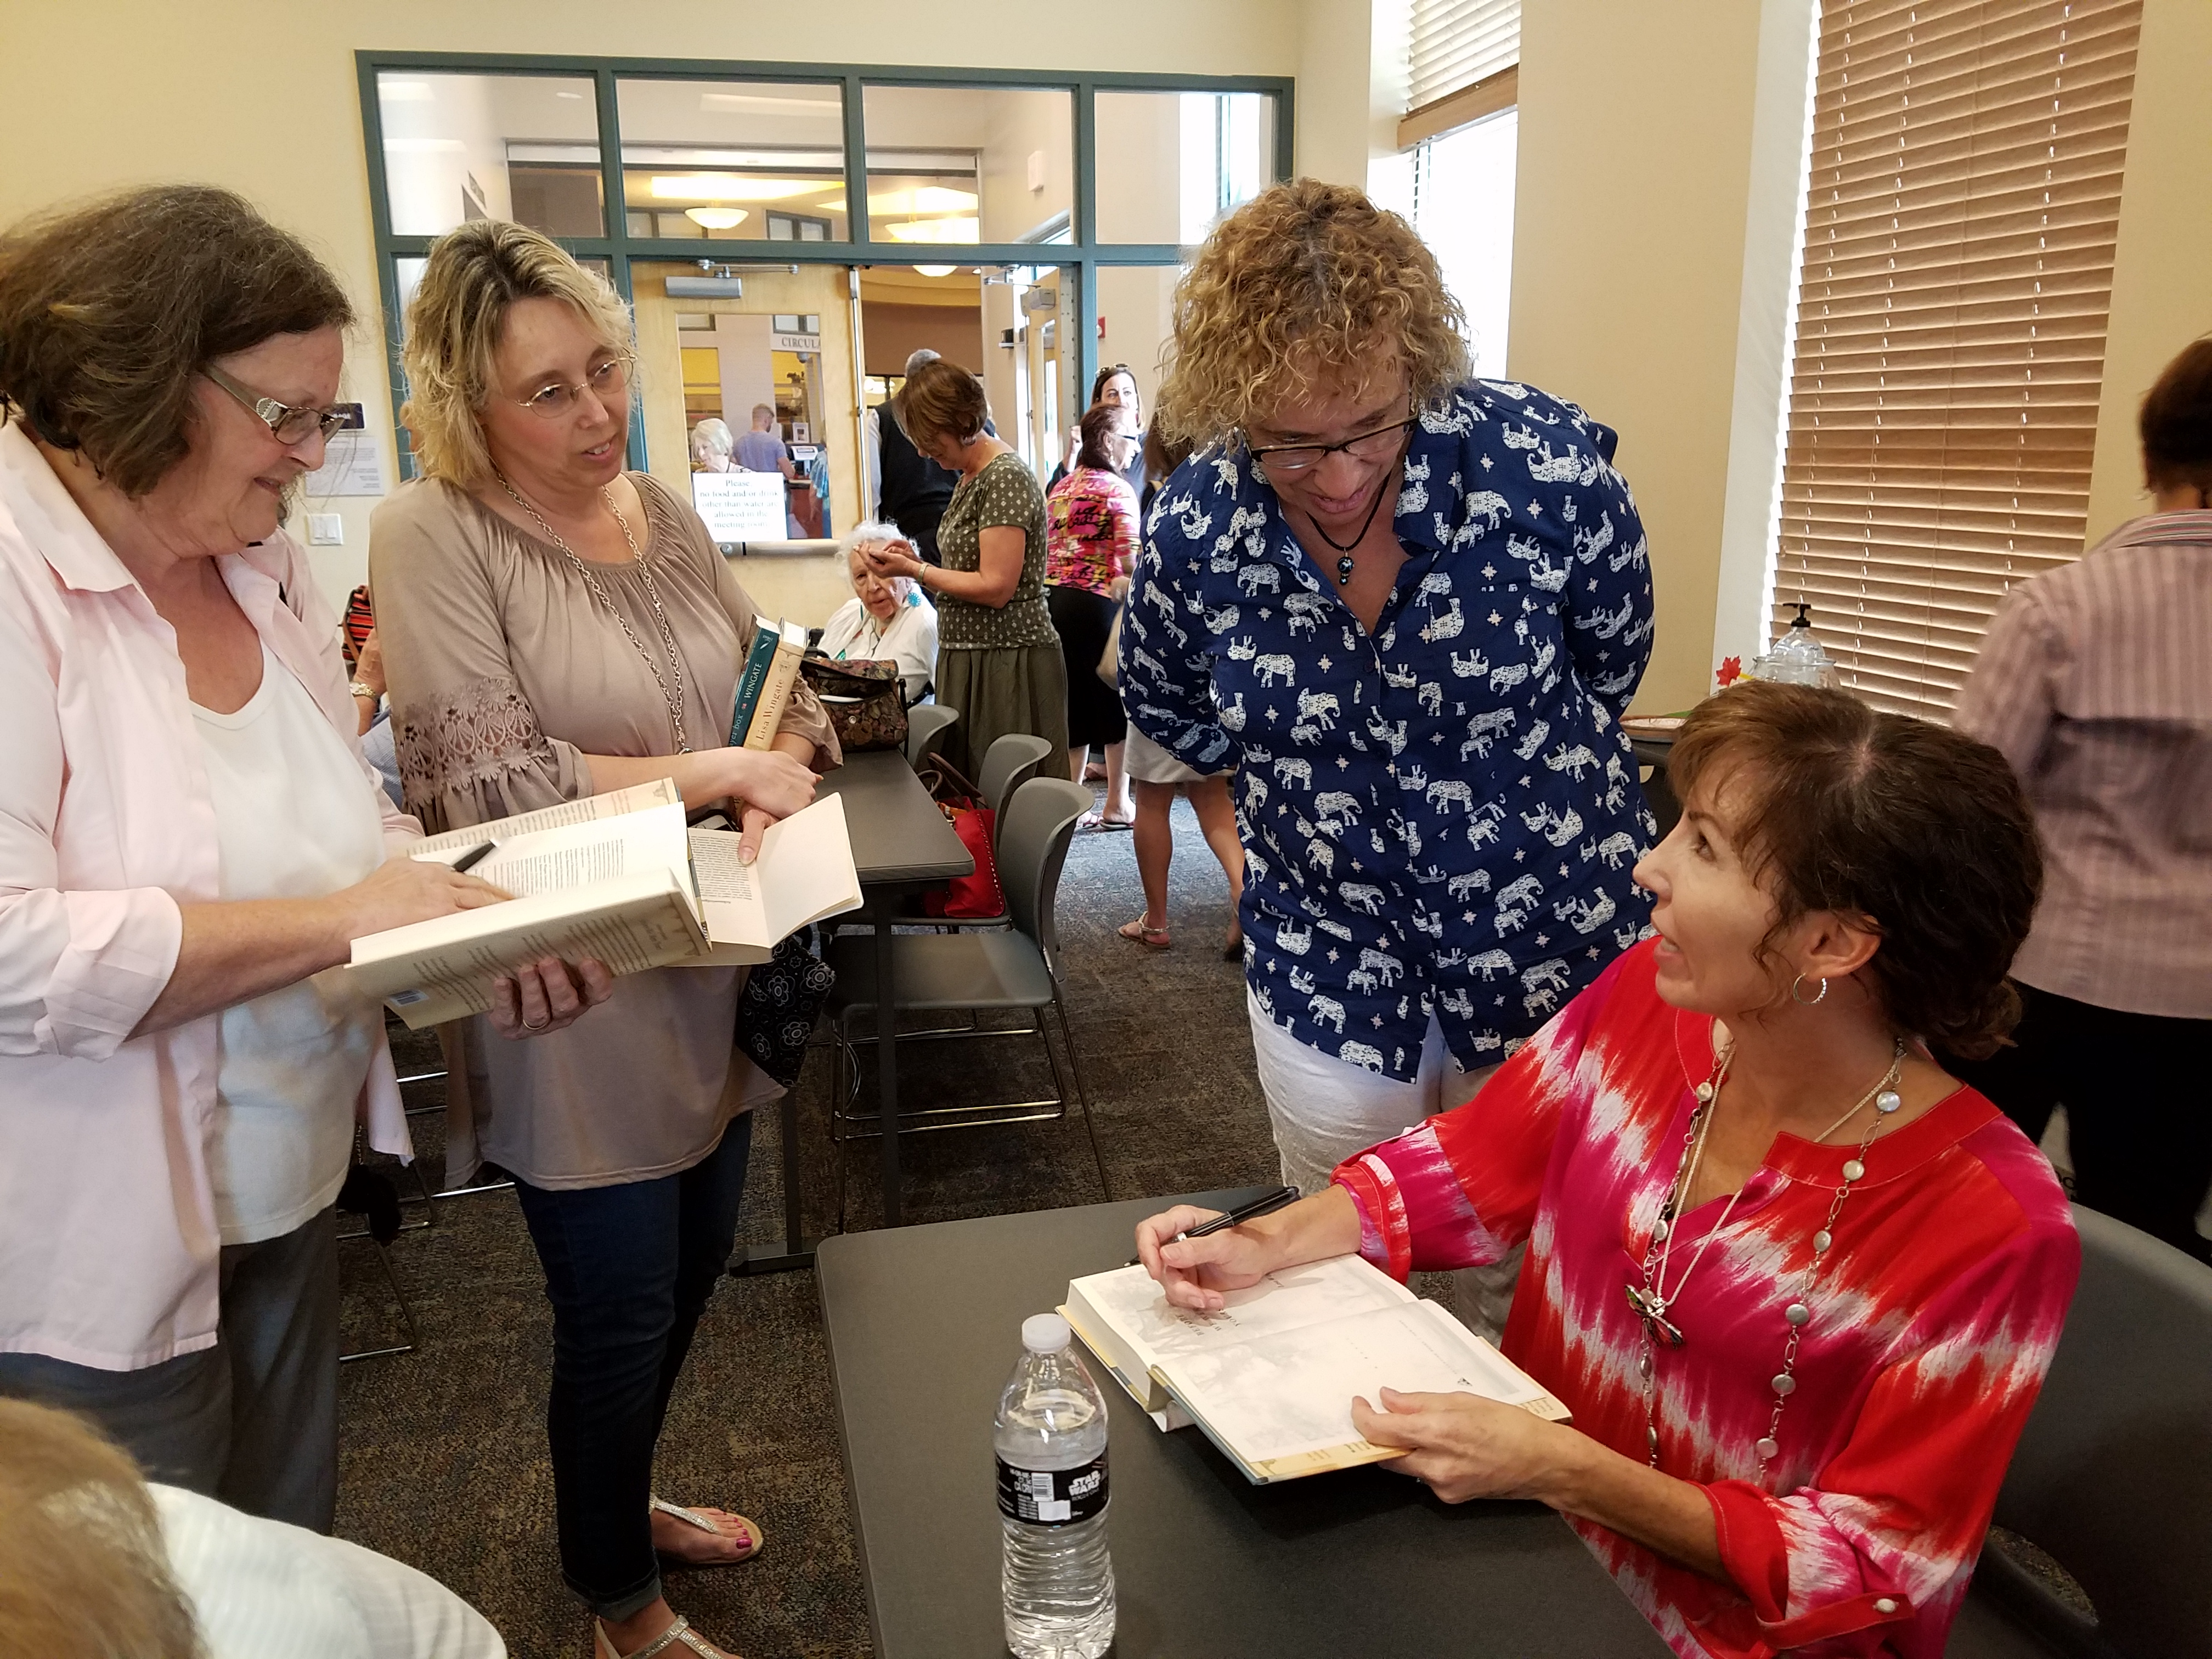 Bestselling Author Lisa Wingate Spoke at the Library